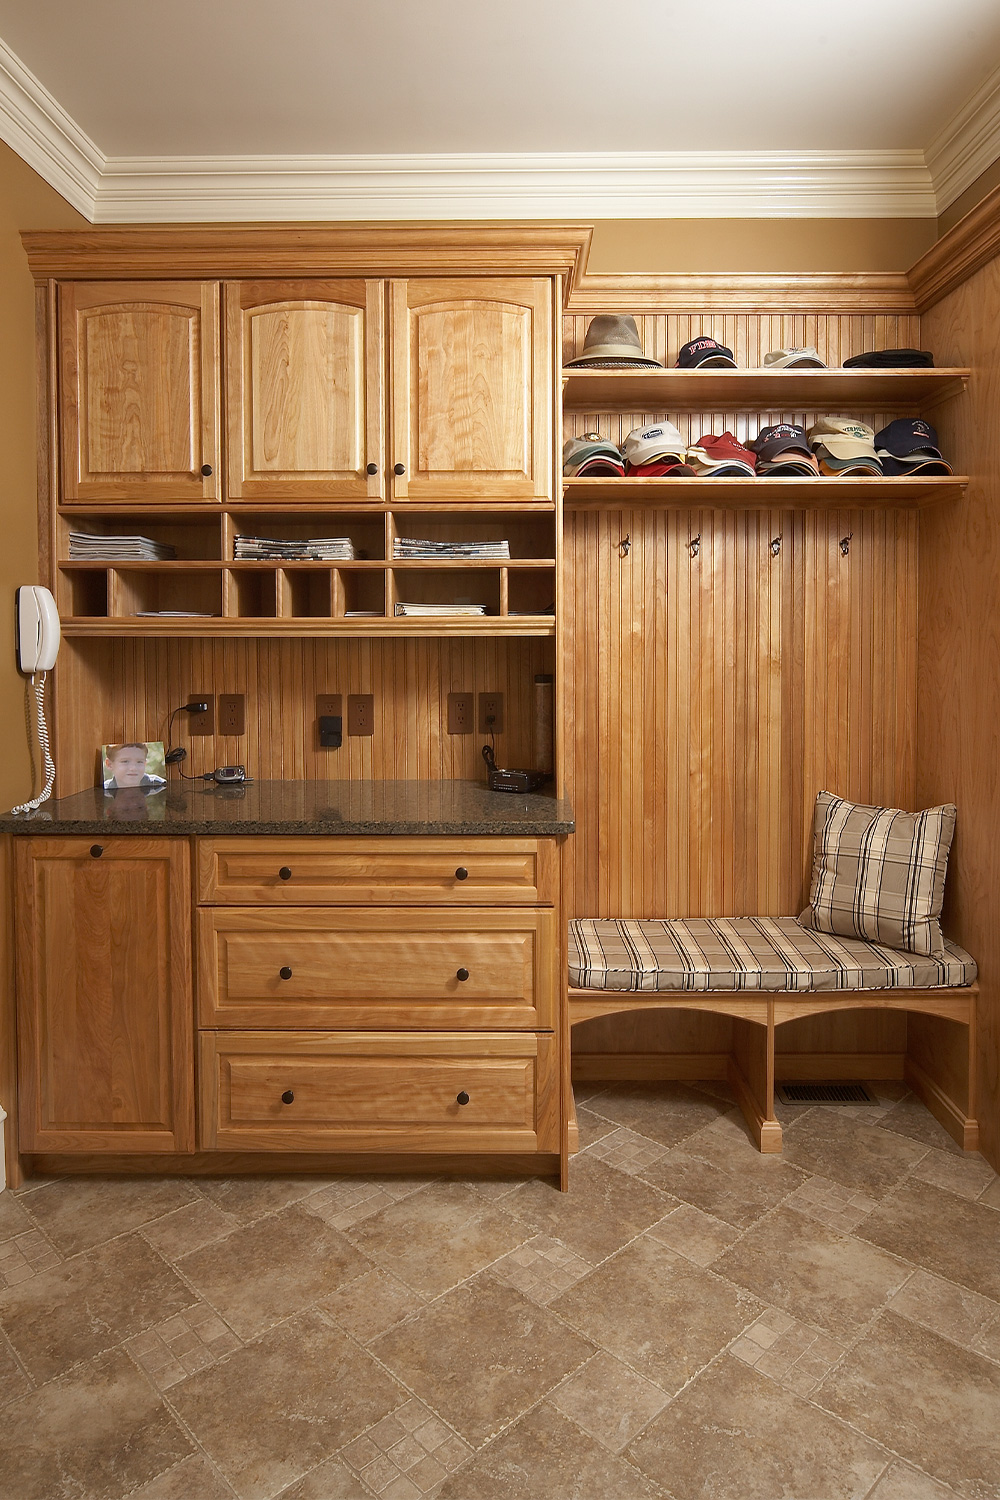 Mudroom with Built-In Bench